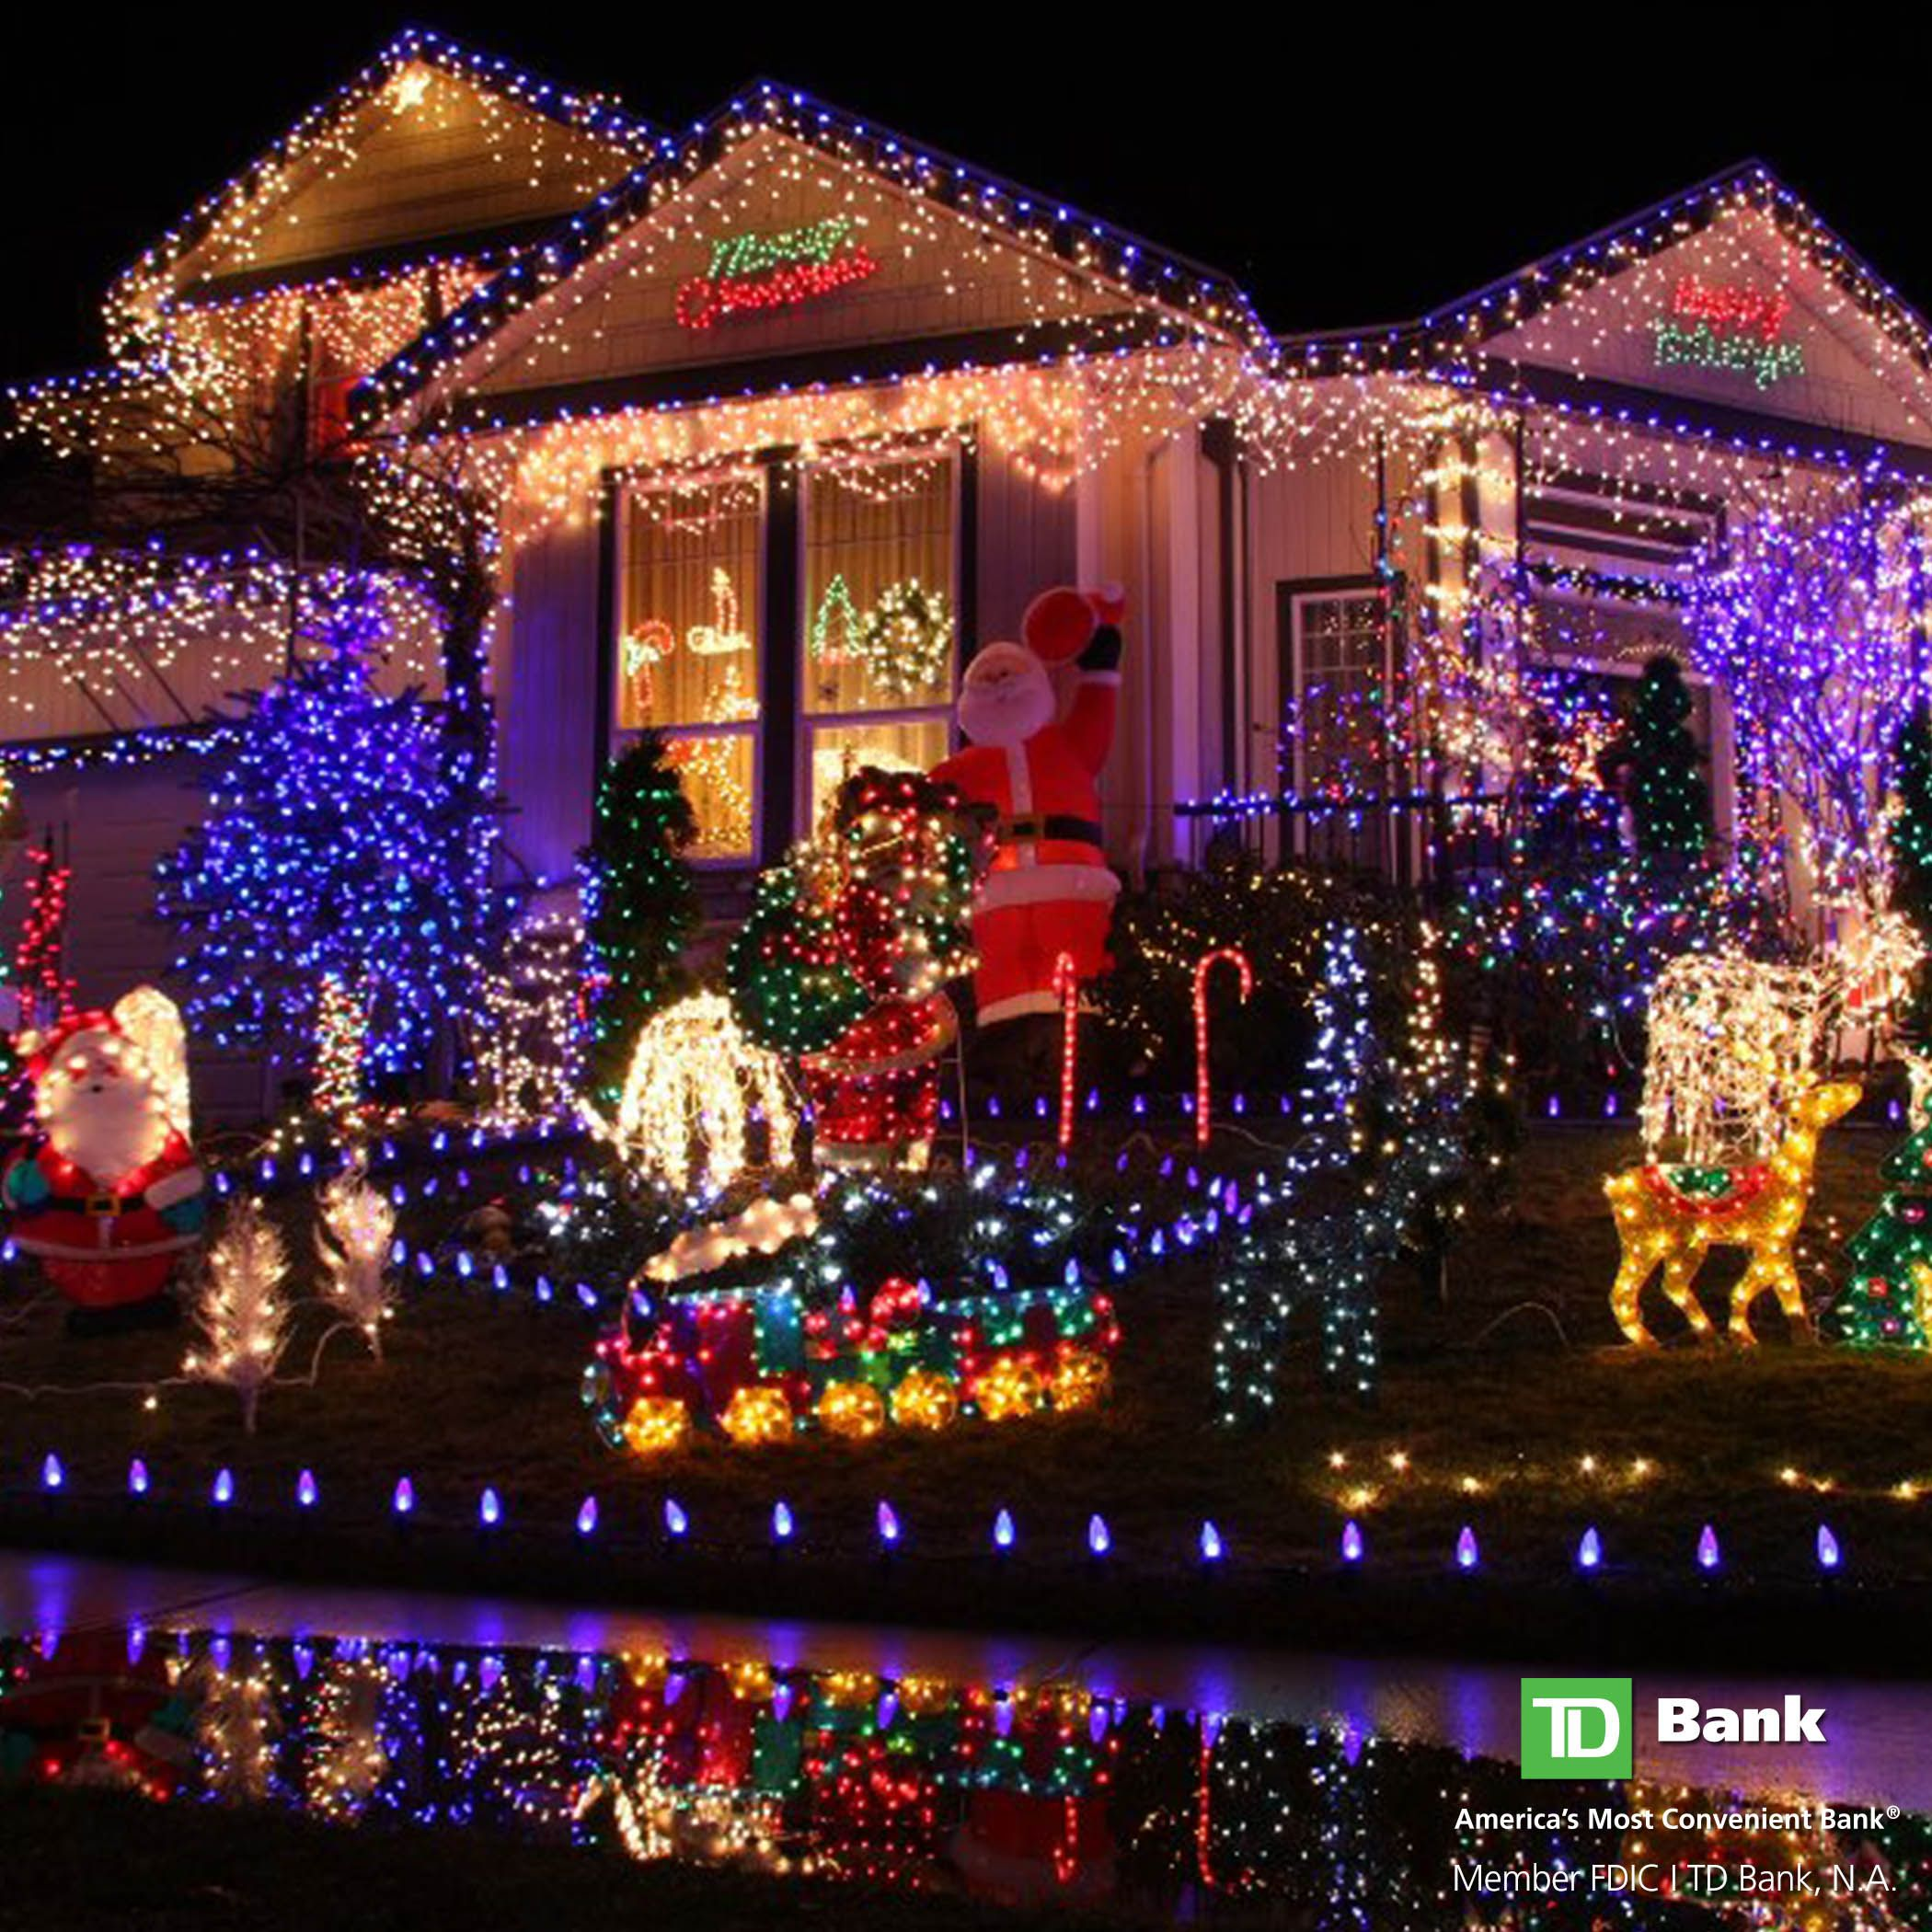 Tdhappyholidays Tip Put Your Lights On A Timer This Holiday Season It Saves You Money Best Christmas Lights Christmas Lights Outside Solar Christmas Lights